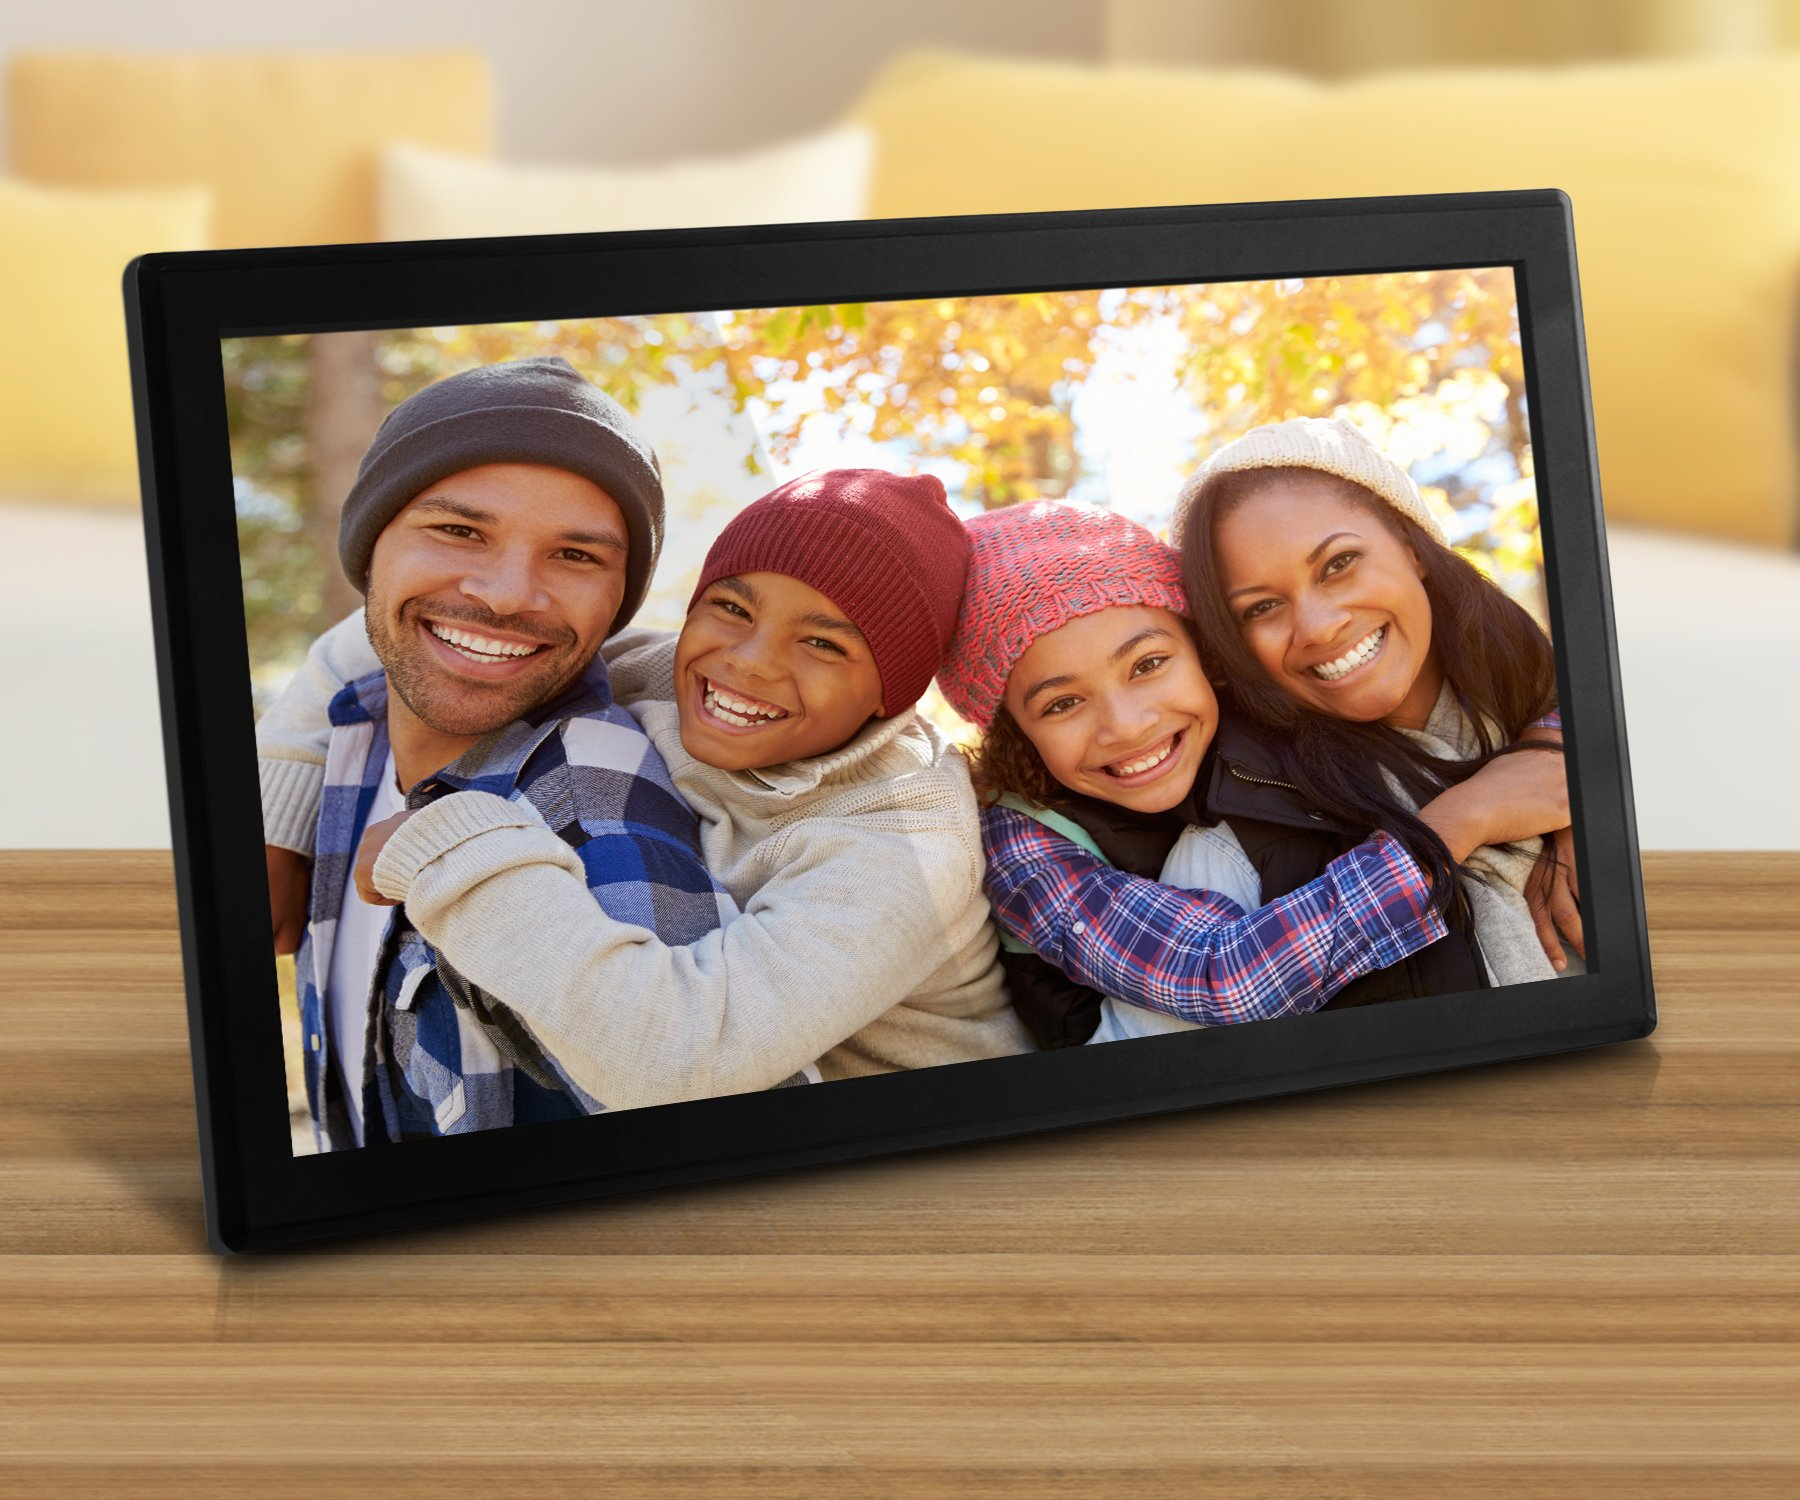 Aluratek (AWDMPF117F) 17.3'' Hi-Res WiFi Digital Photo Frame with Touchscreen IPS LCD Display & 8GB Built-in Memory (1920 x 1080 Resolution), Photo/Music/Video Support, Wall Mountable by Aluratek (Image #5)